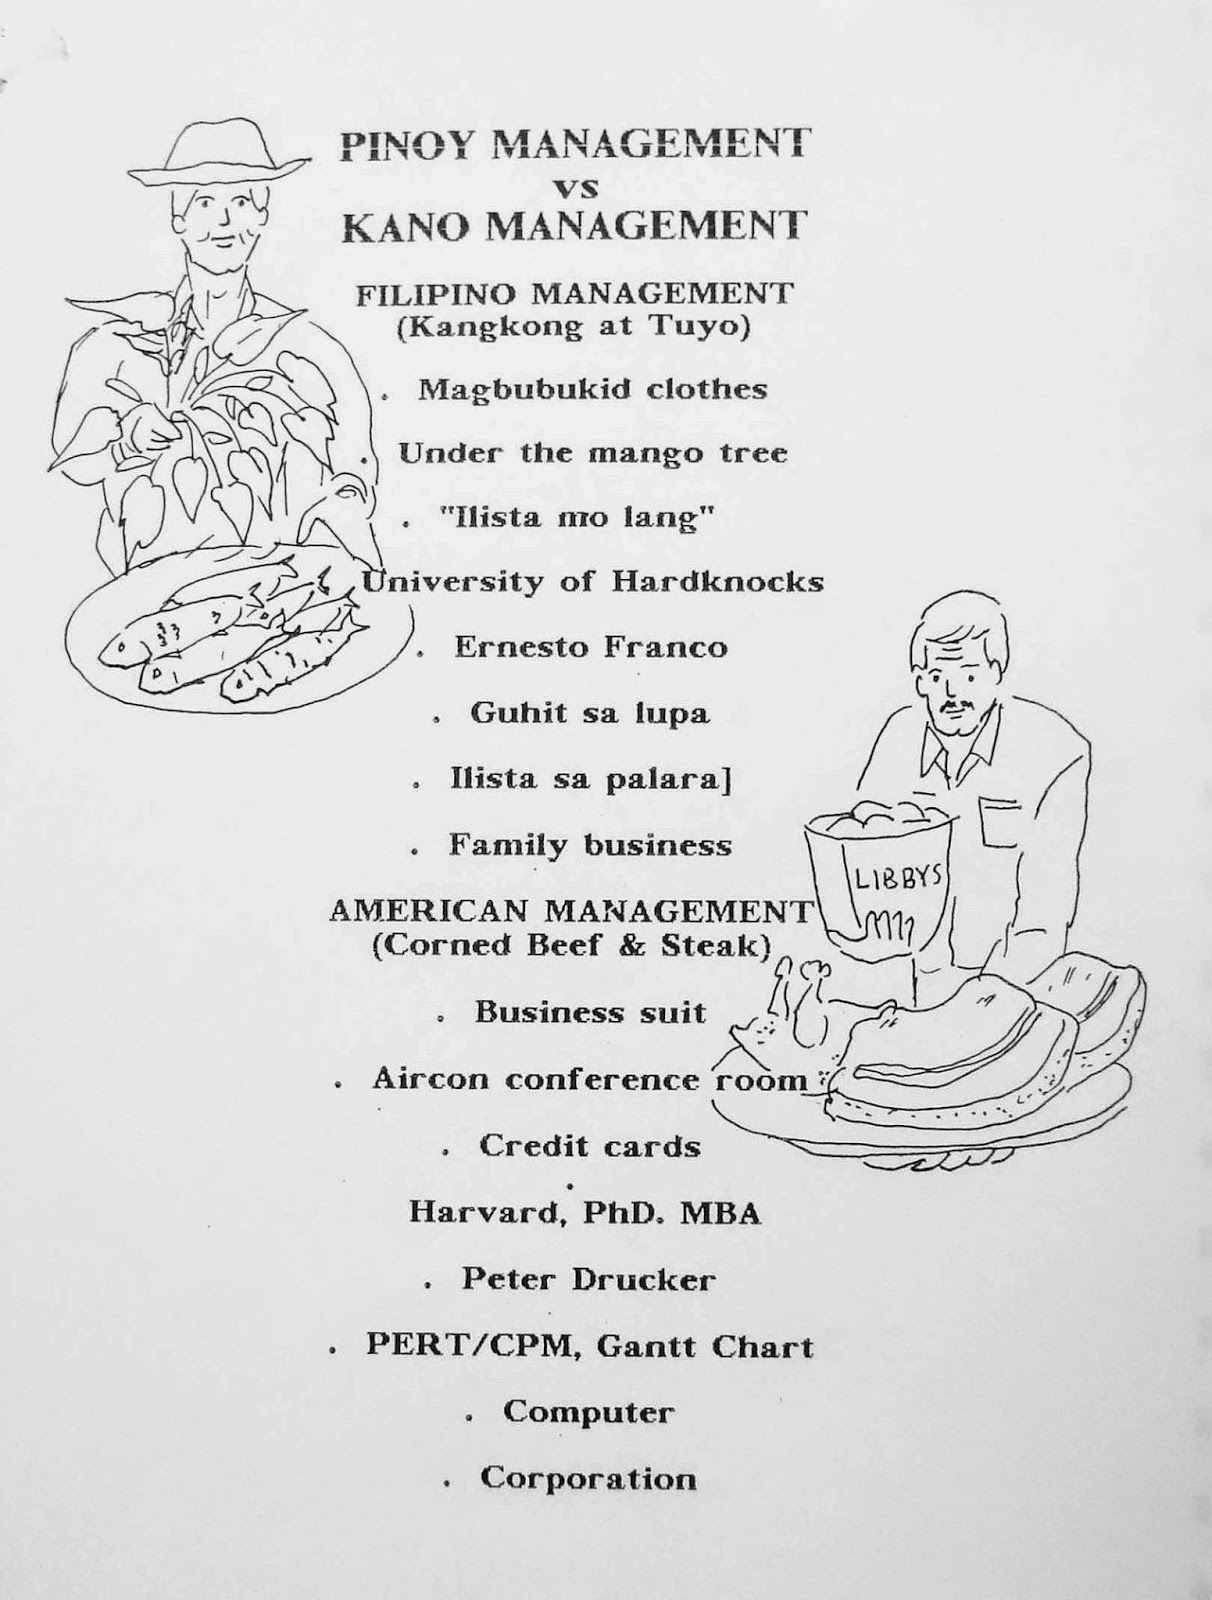 management filipino style When i became a line manager in 1981, i realized how little of what i'd read had  any  the japanese style is very frustrating for many non-japanese, especially.